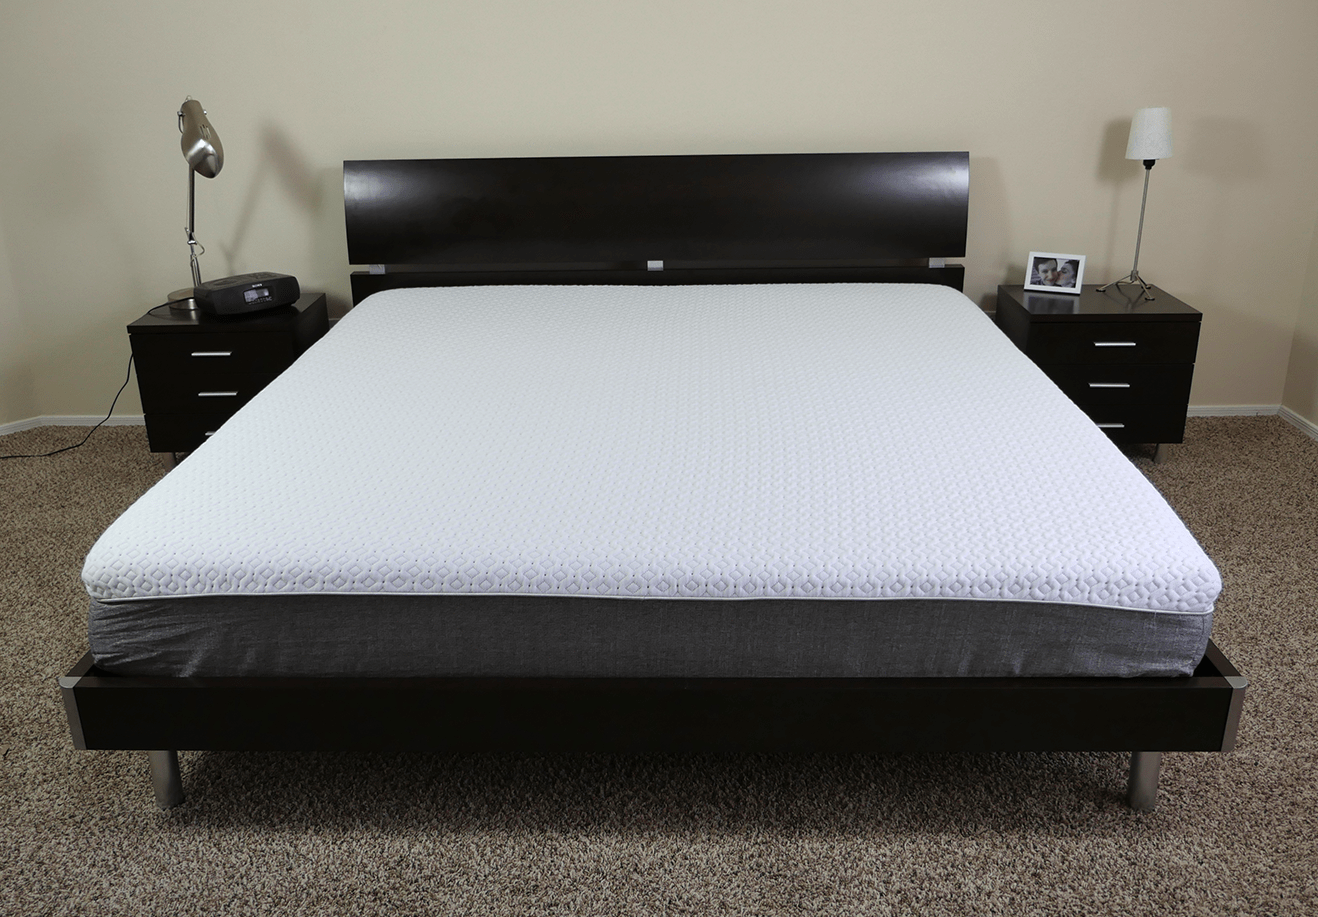 Endy mattress review sleepopolis for Brooklyn bedding vs tempurpedic